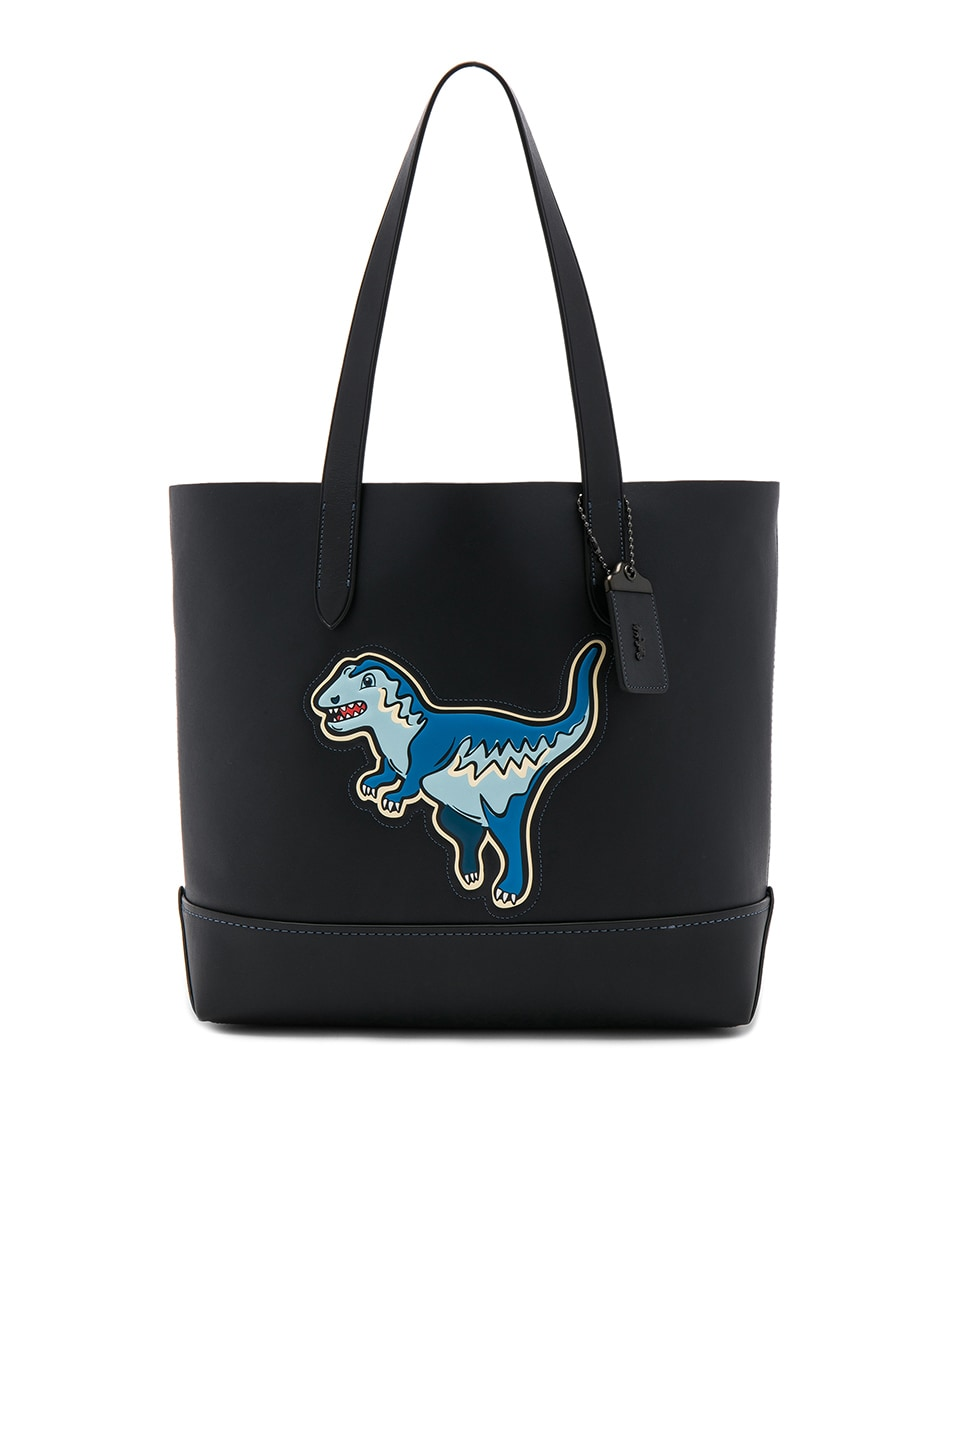 Image 1 of Coach 1941 Glove Calf Leather Rexy Gotham Tote in Navy & Black